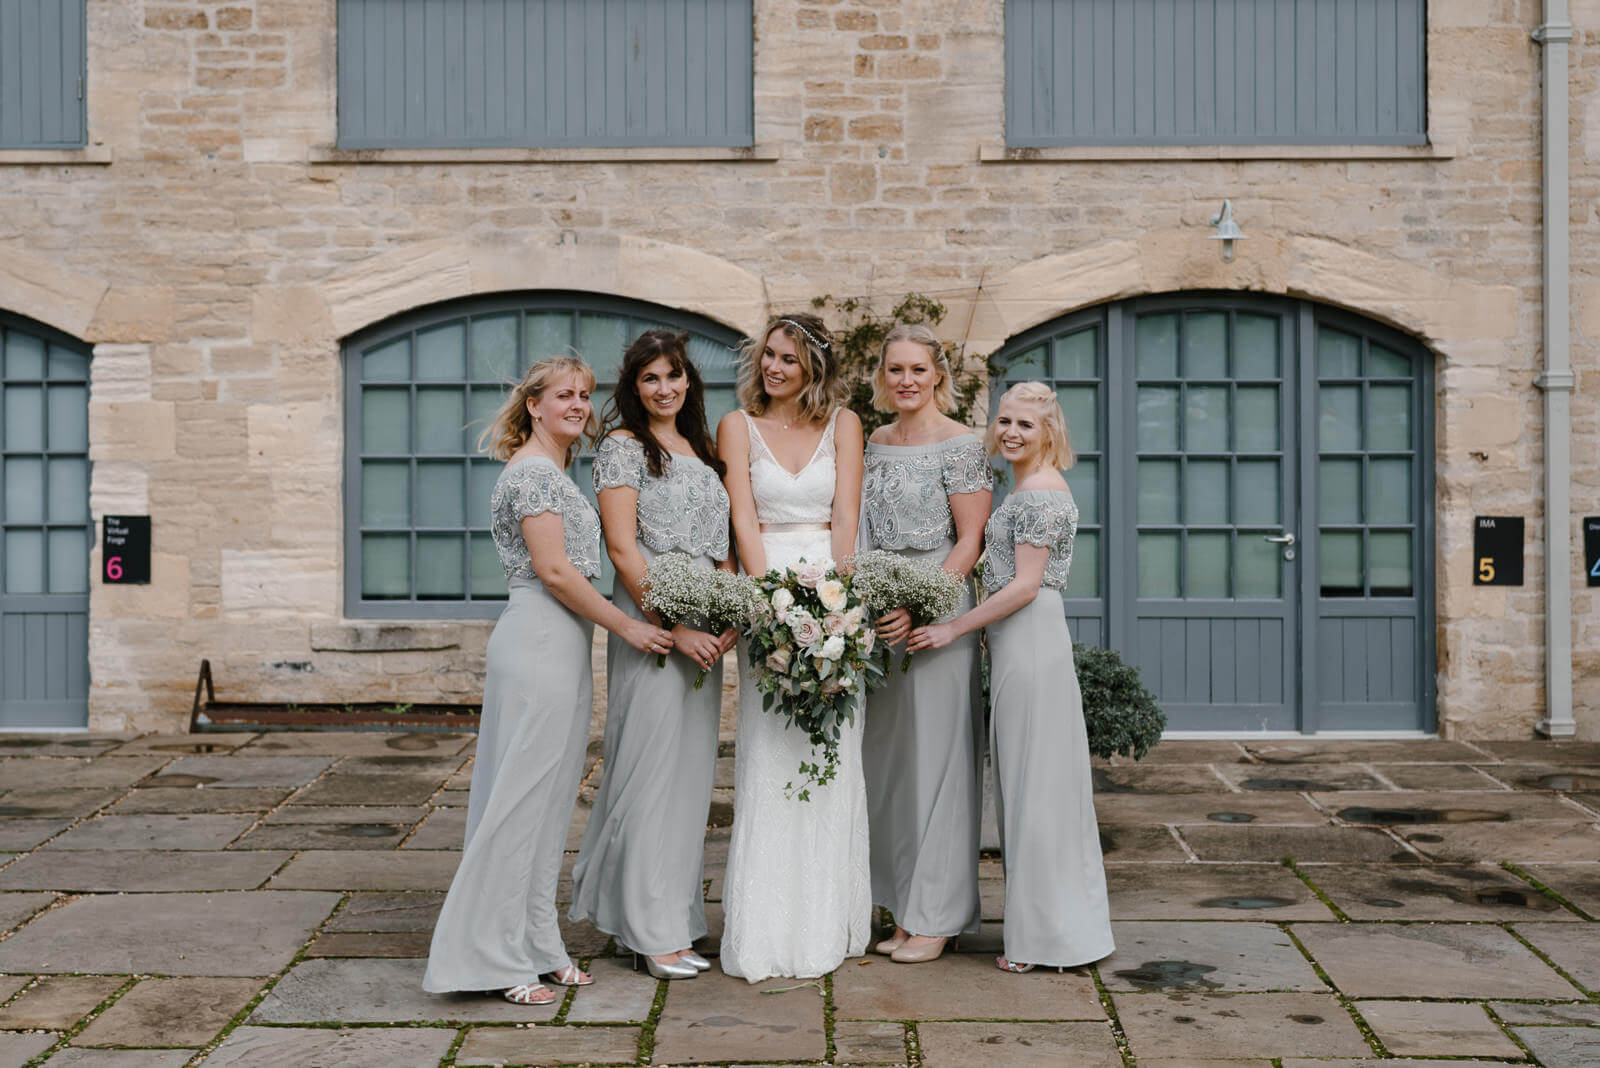 Portrait of bride and her bridesmaids outside Wiltshire Wedding venue in Holt